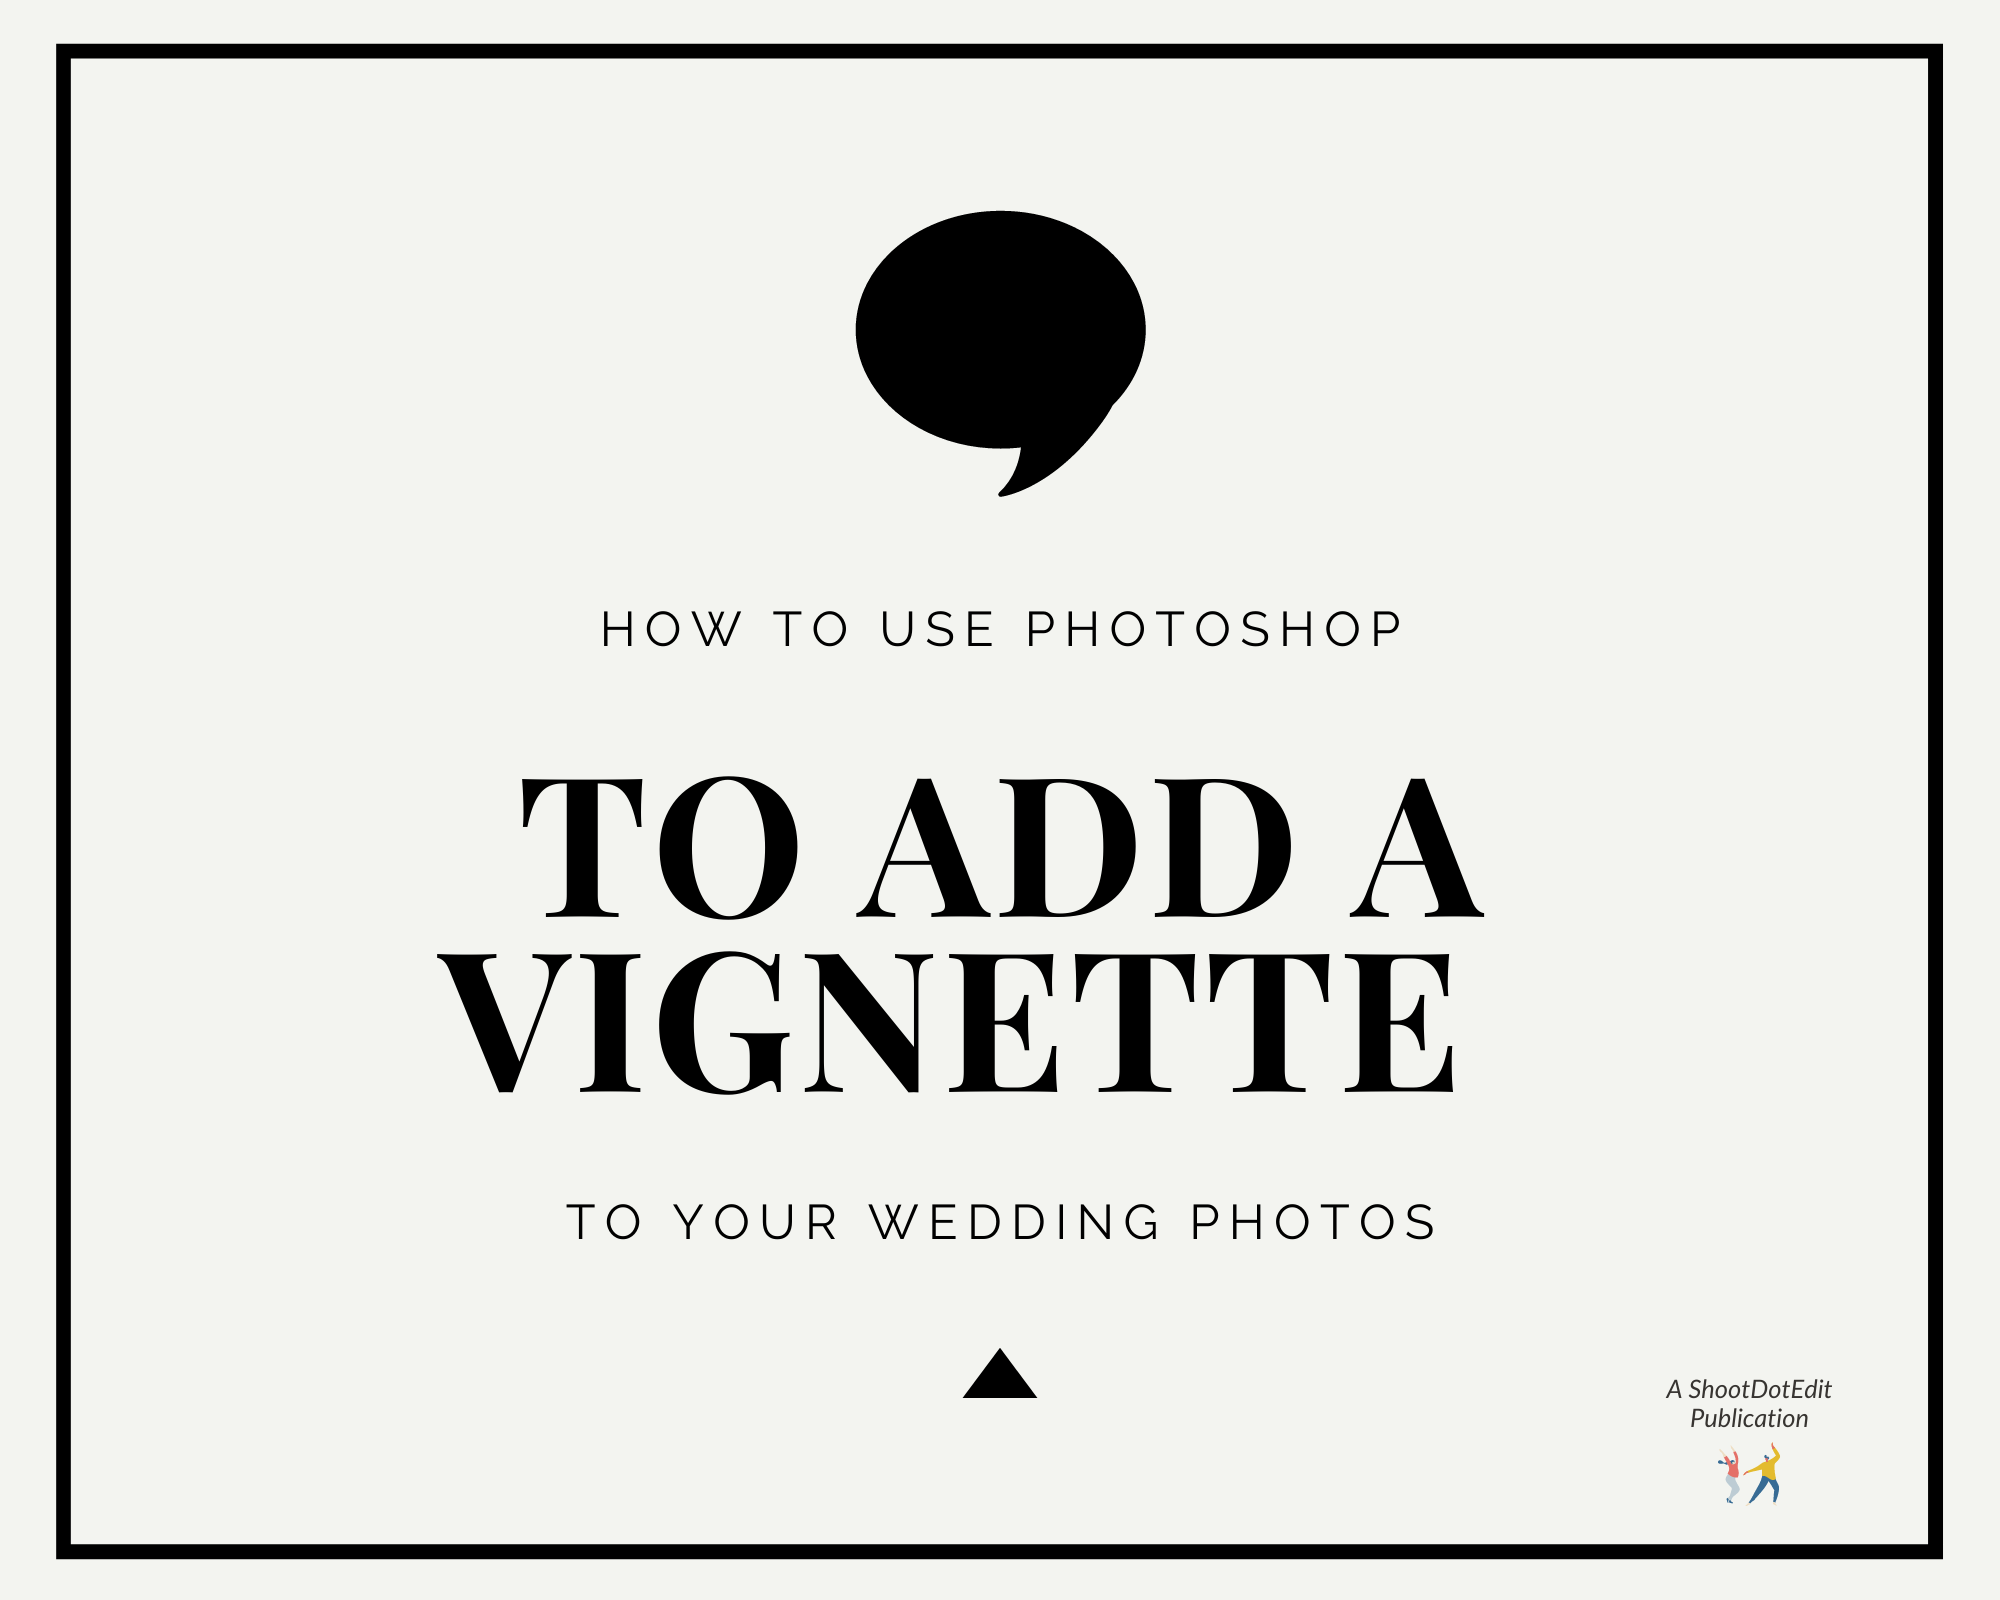 Infographic stating how to use photoshop to add a vignette to your wedding photos